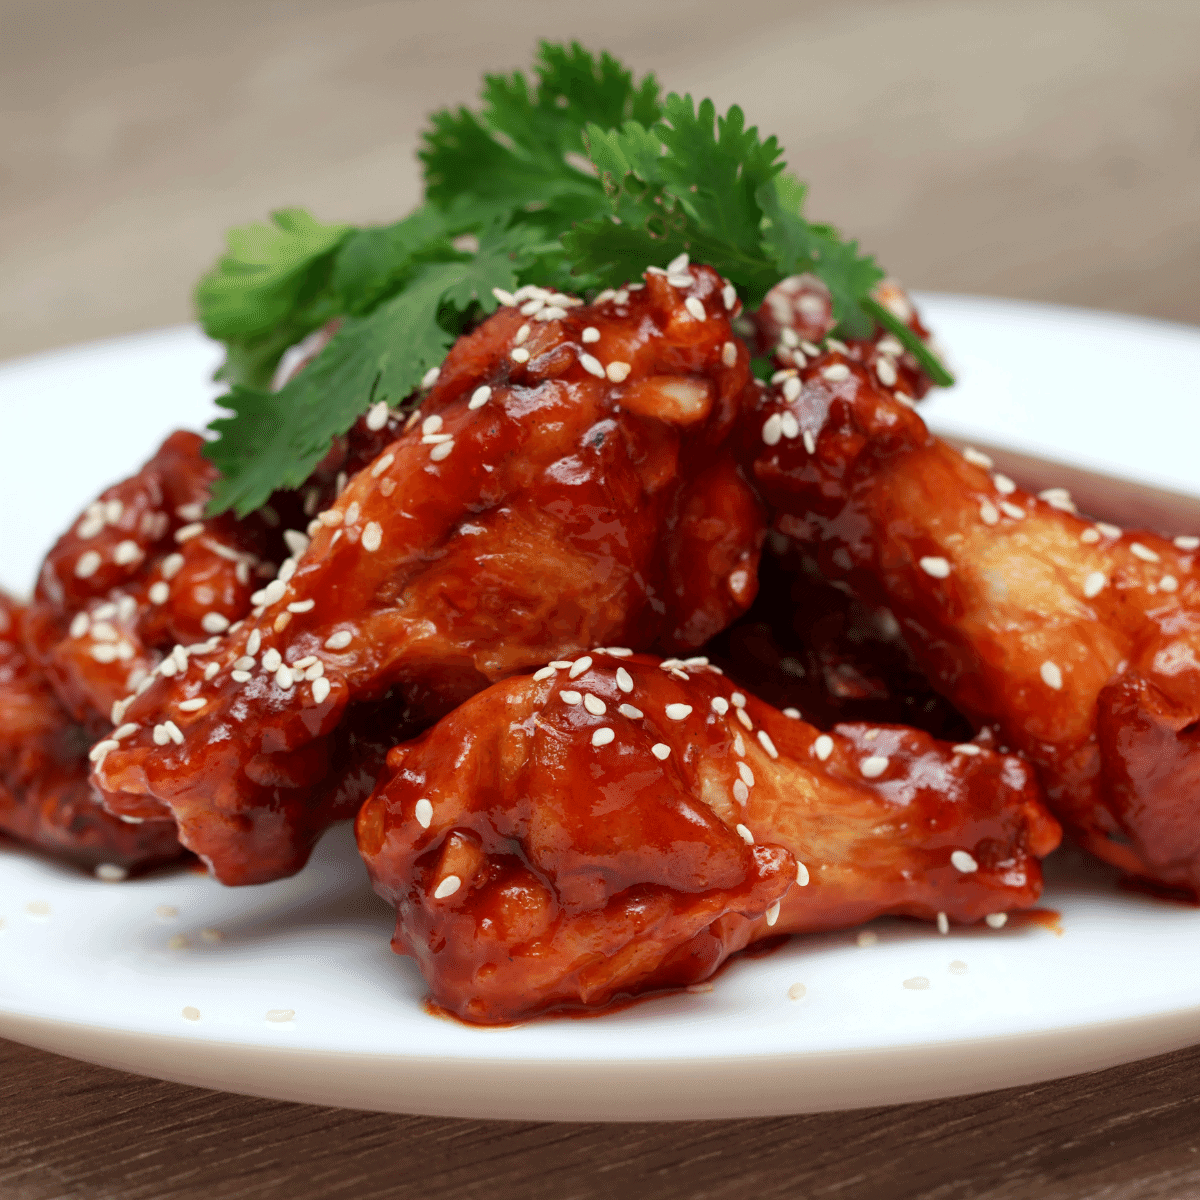 Teriyaki chicken wings served on a white plate with sesame seeds sprinkled on top